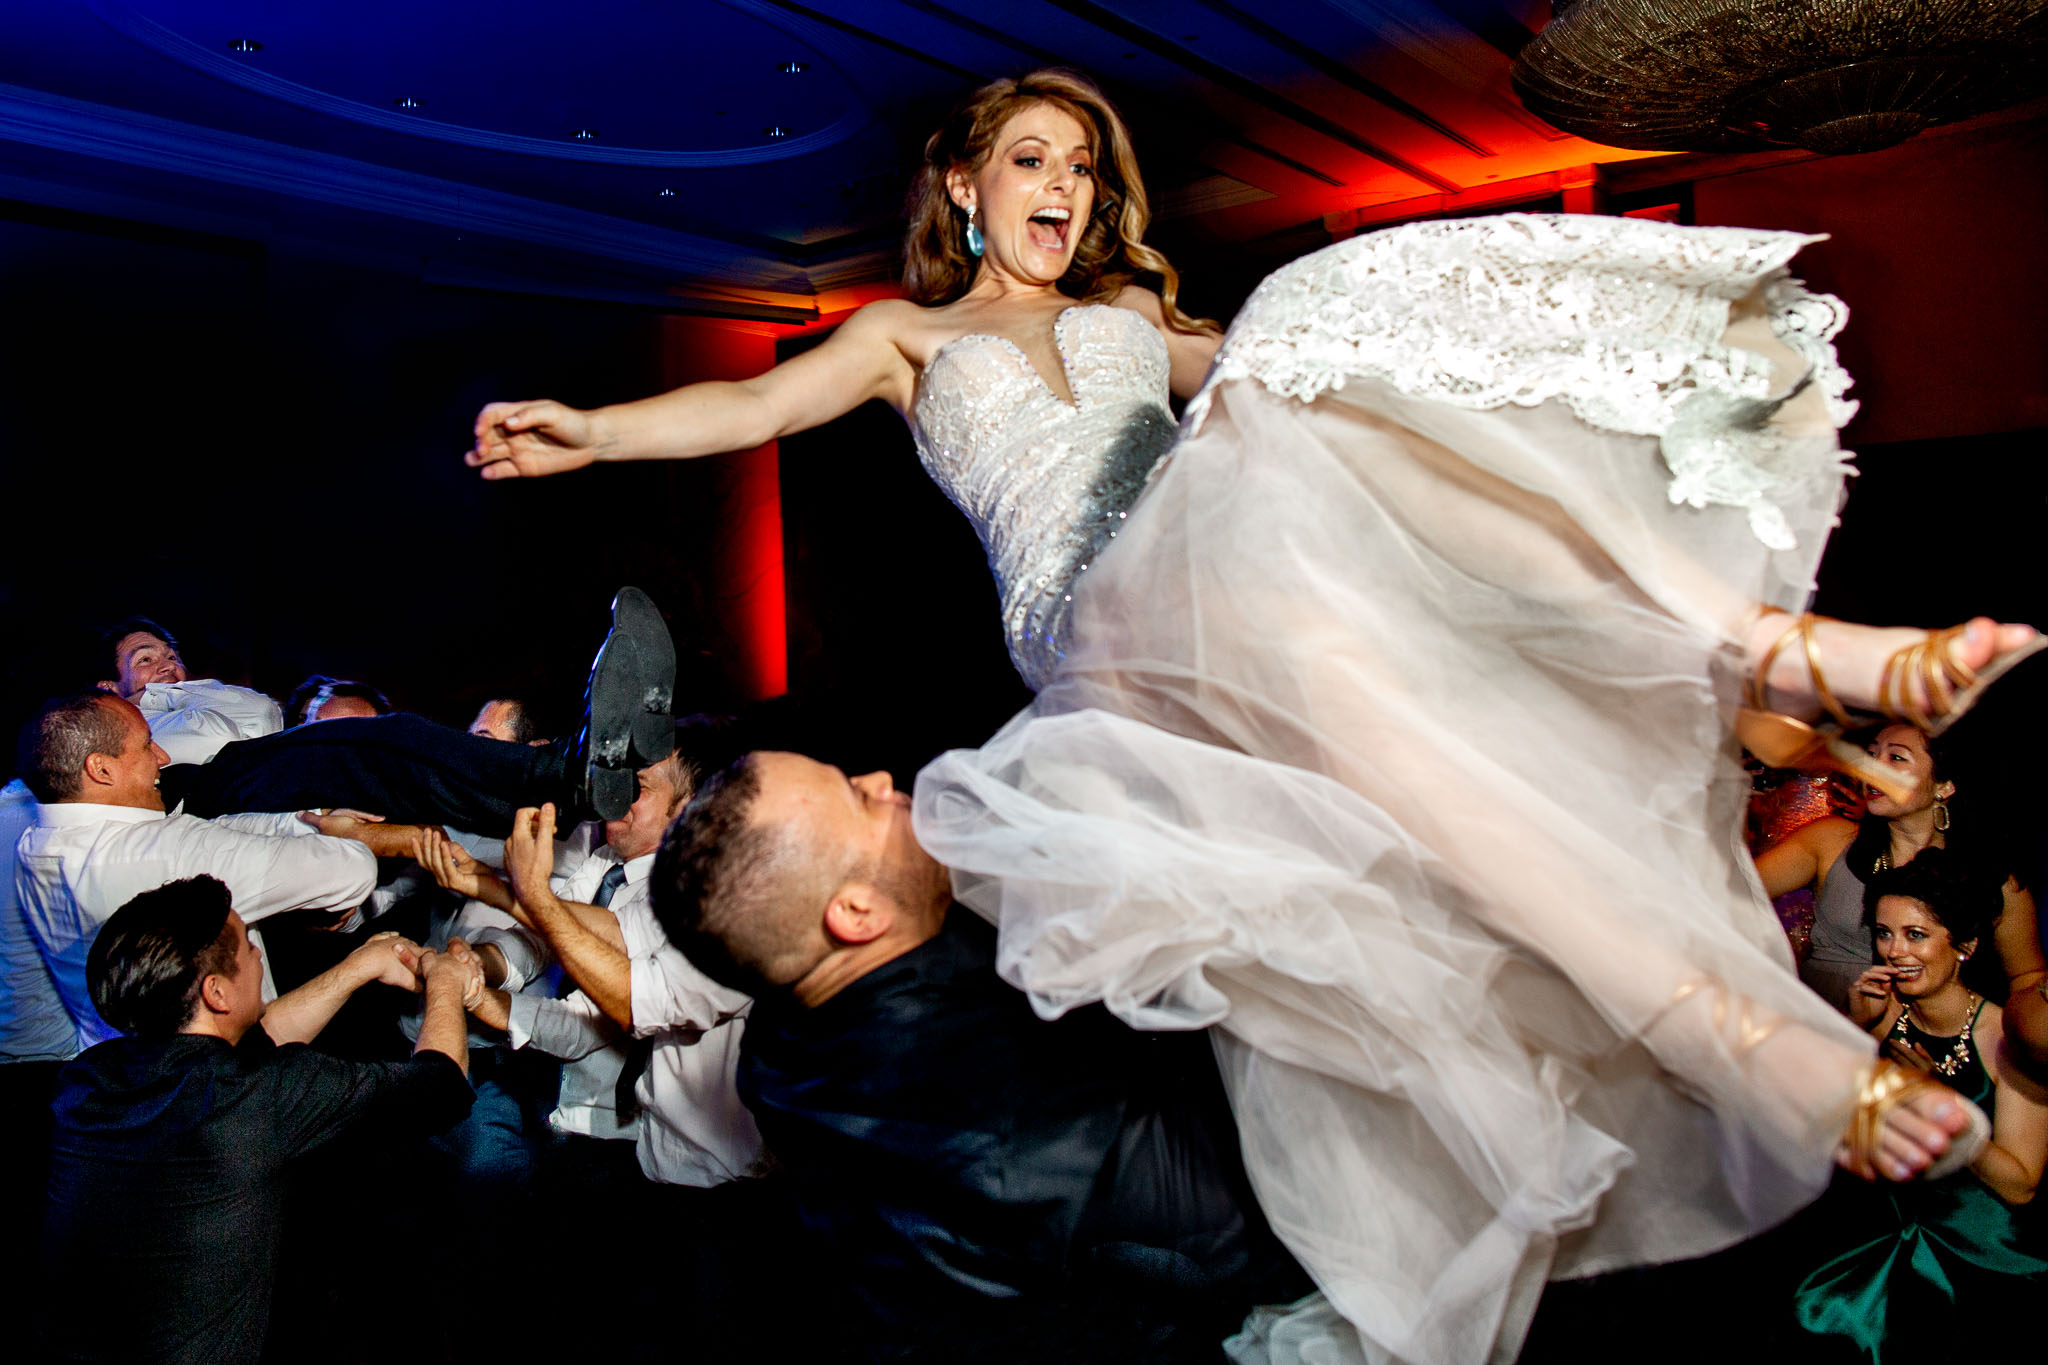 Bride Flying on Dance Floor in Peru near Machu Picchu - JOS studios